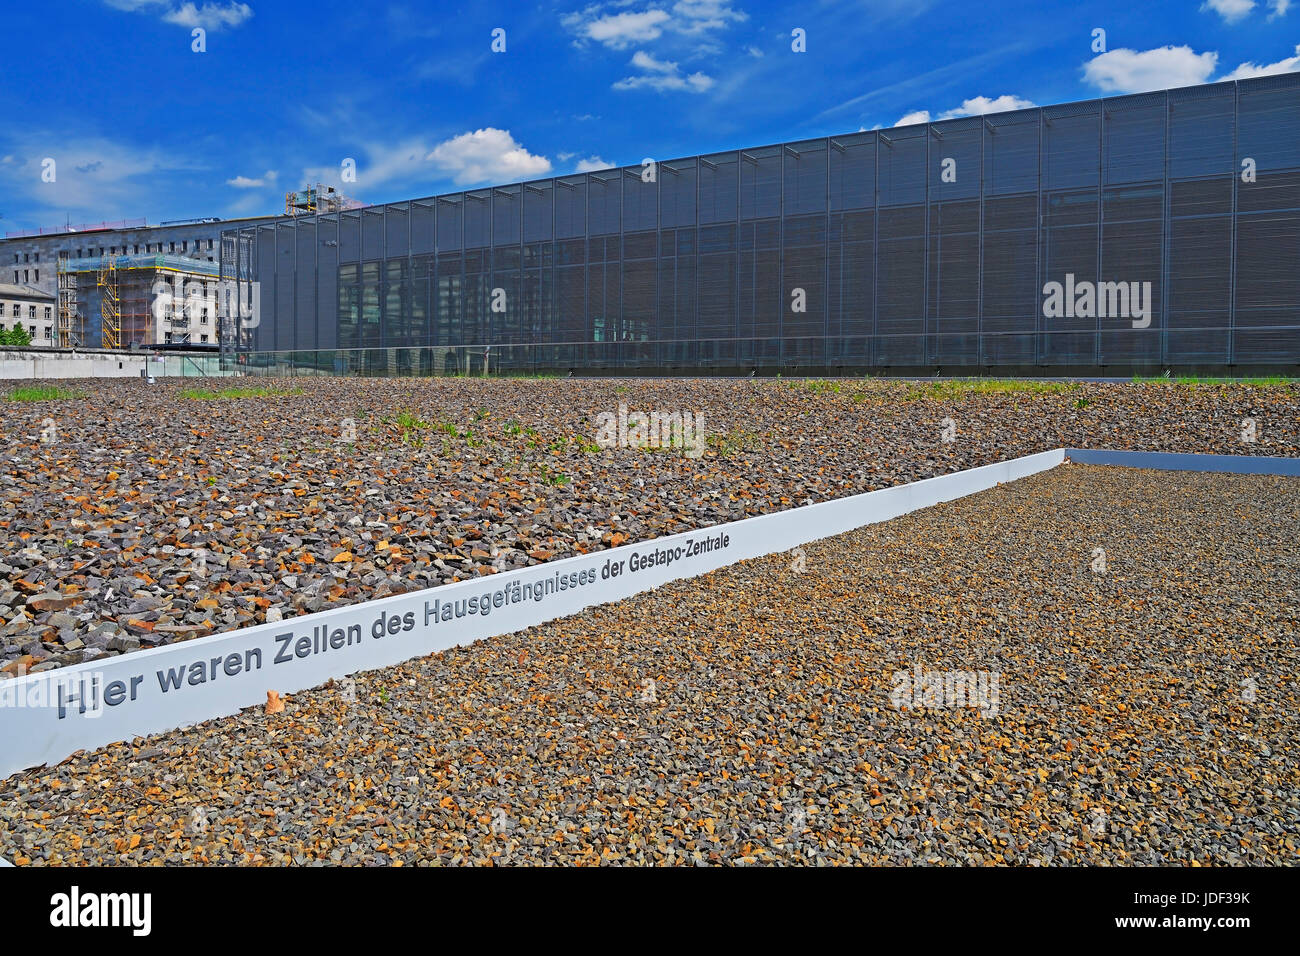 Documentation Center Topography of the Terror, Berlin, Germany - Stock Image